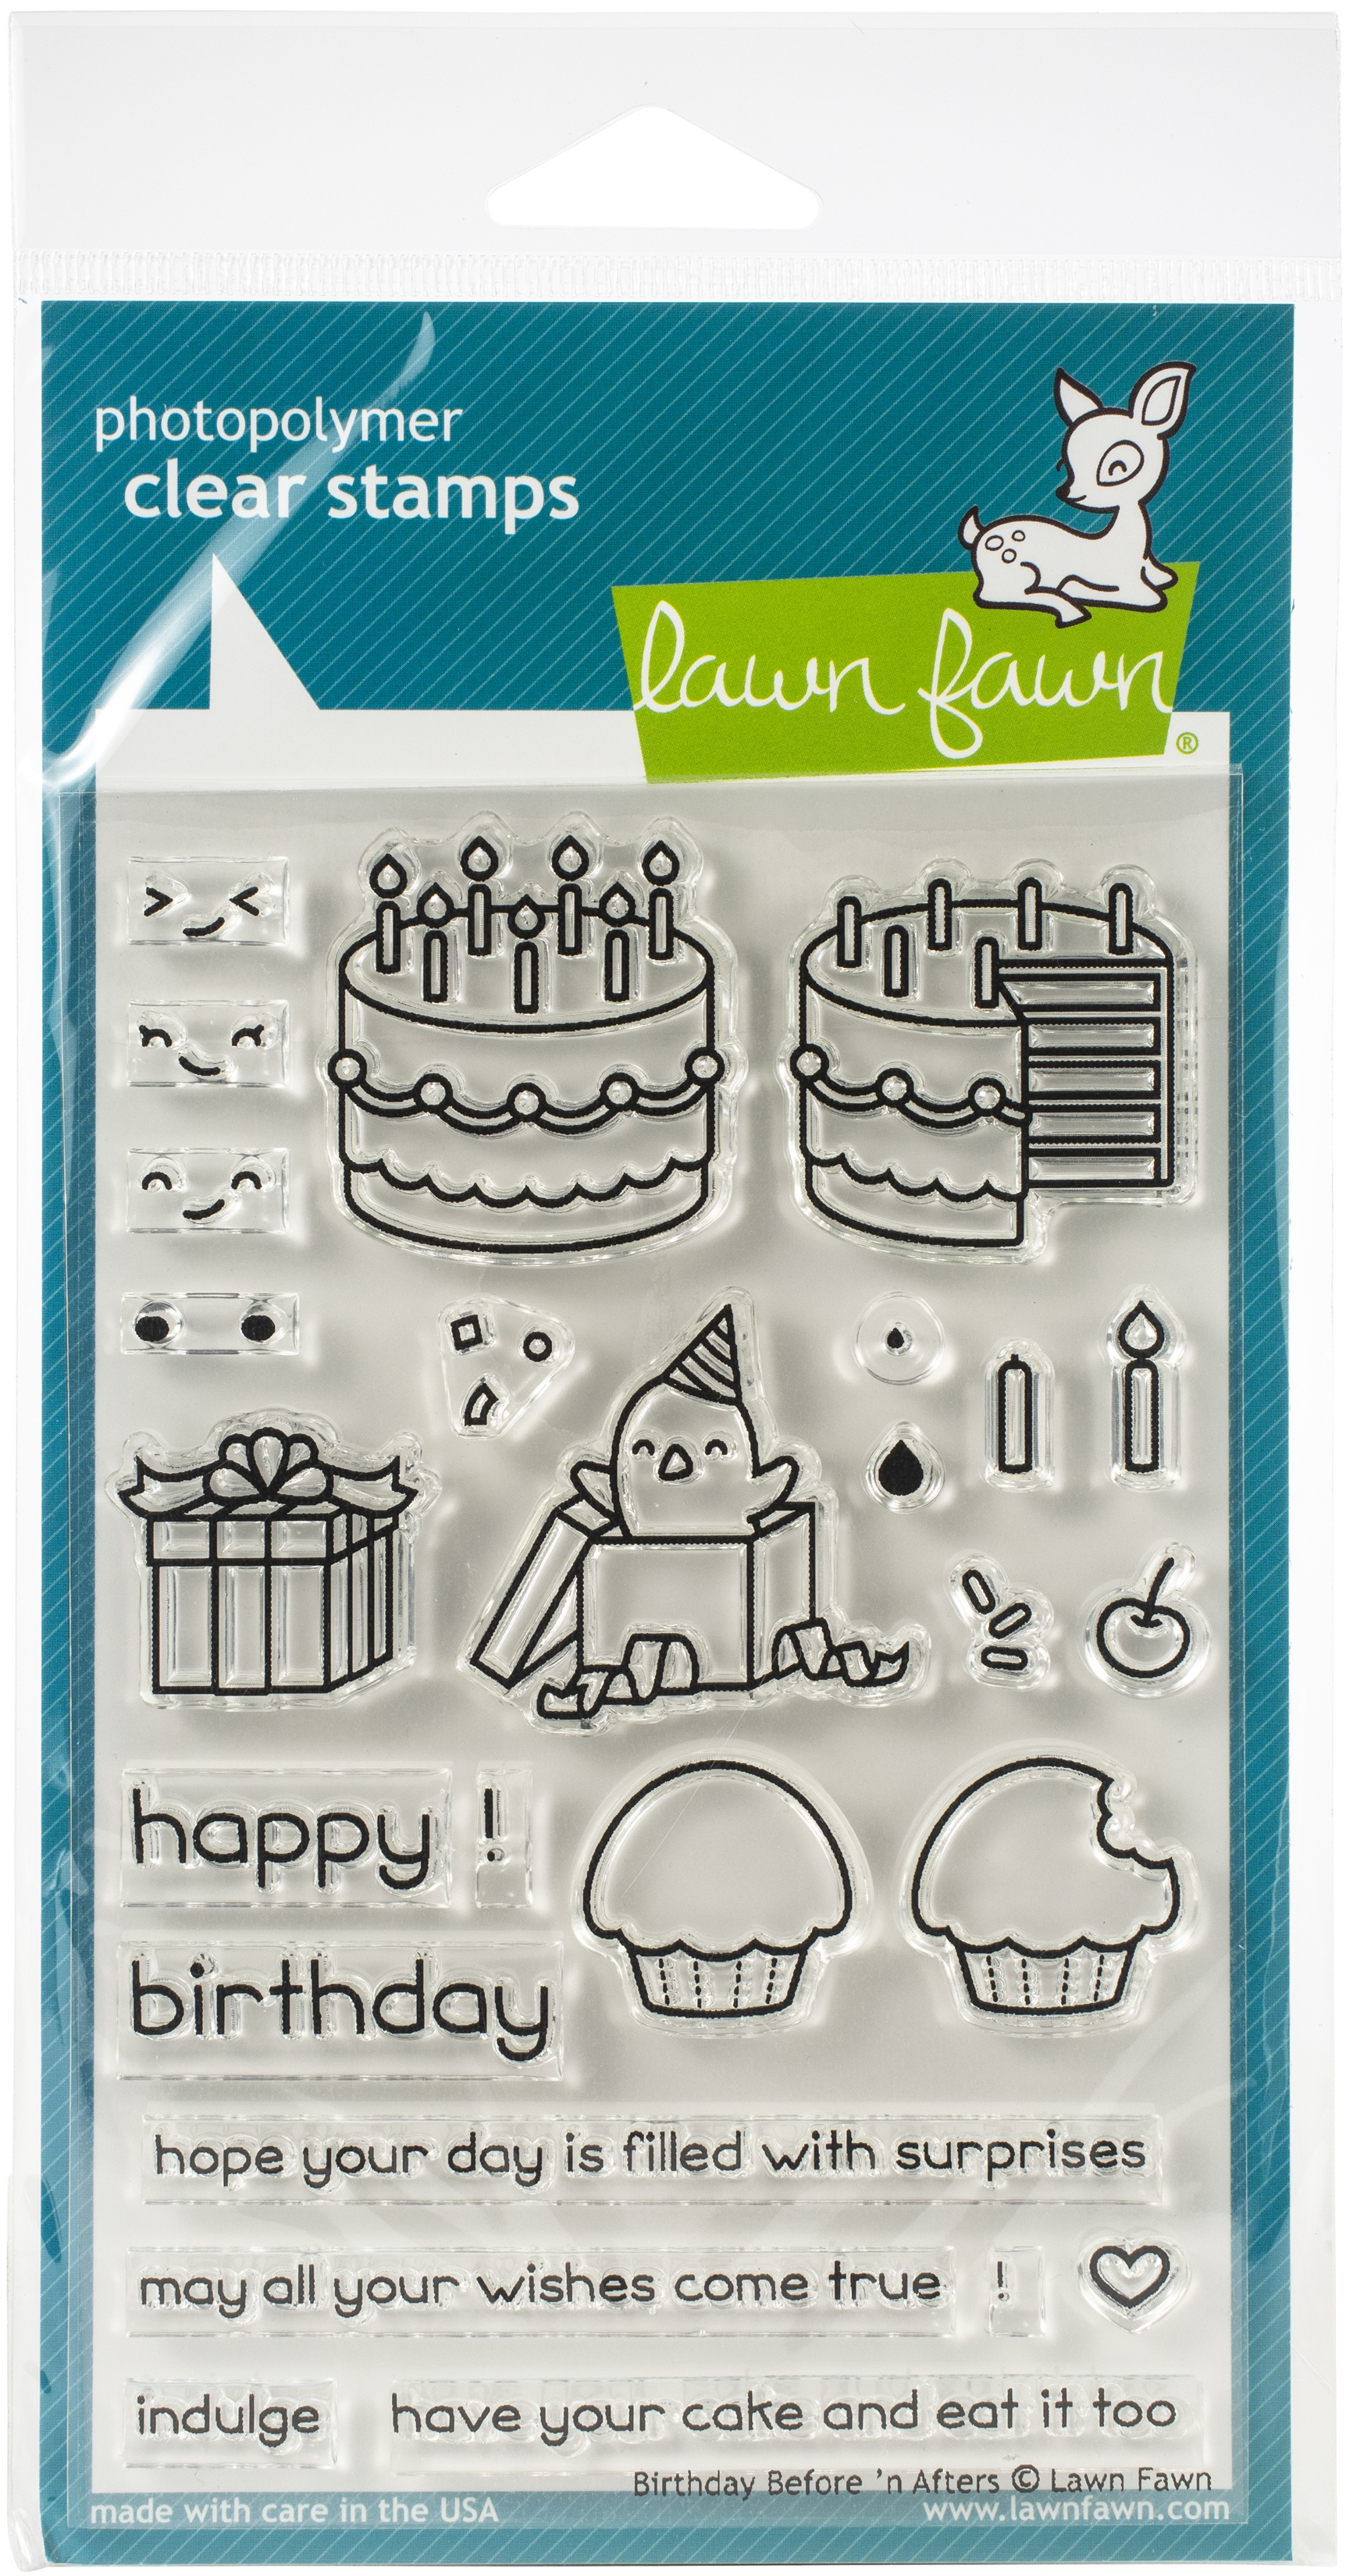 Lawn Fawn Clear Stamps 4X6-Birthday Before 'n Afters